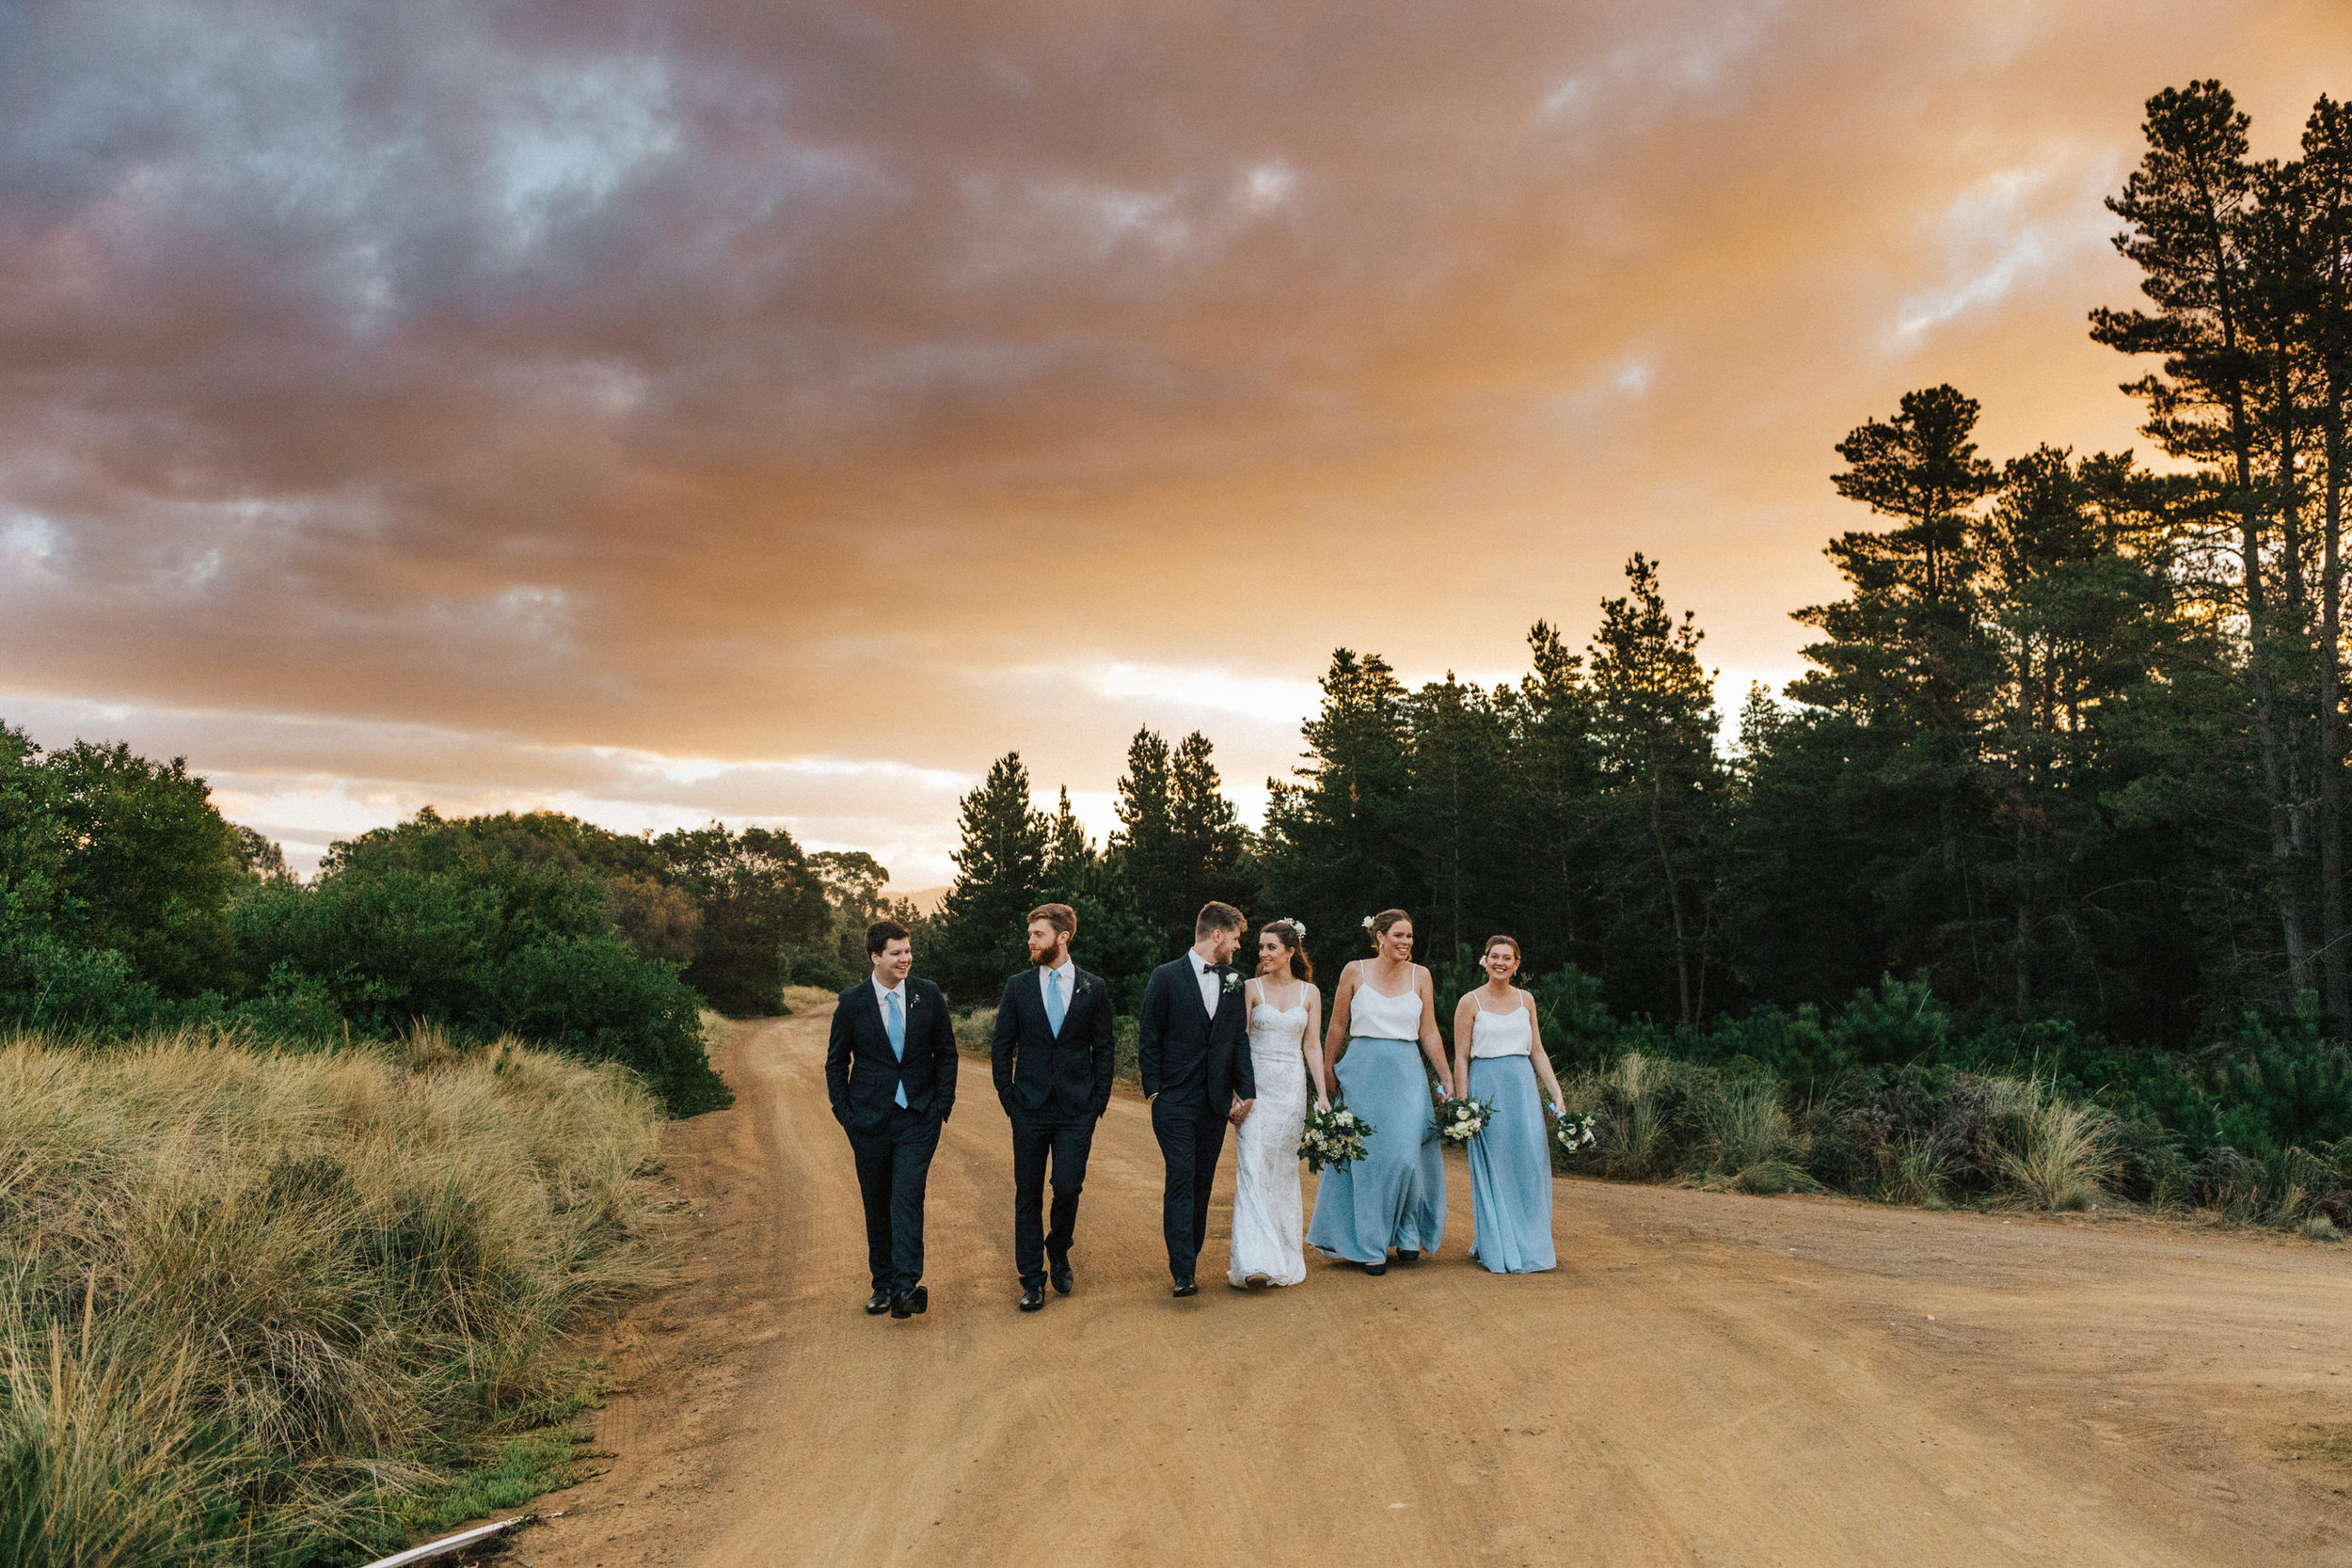 Wedding Photography Tasmania 115.jpg